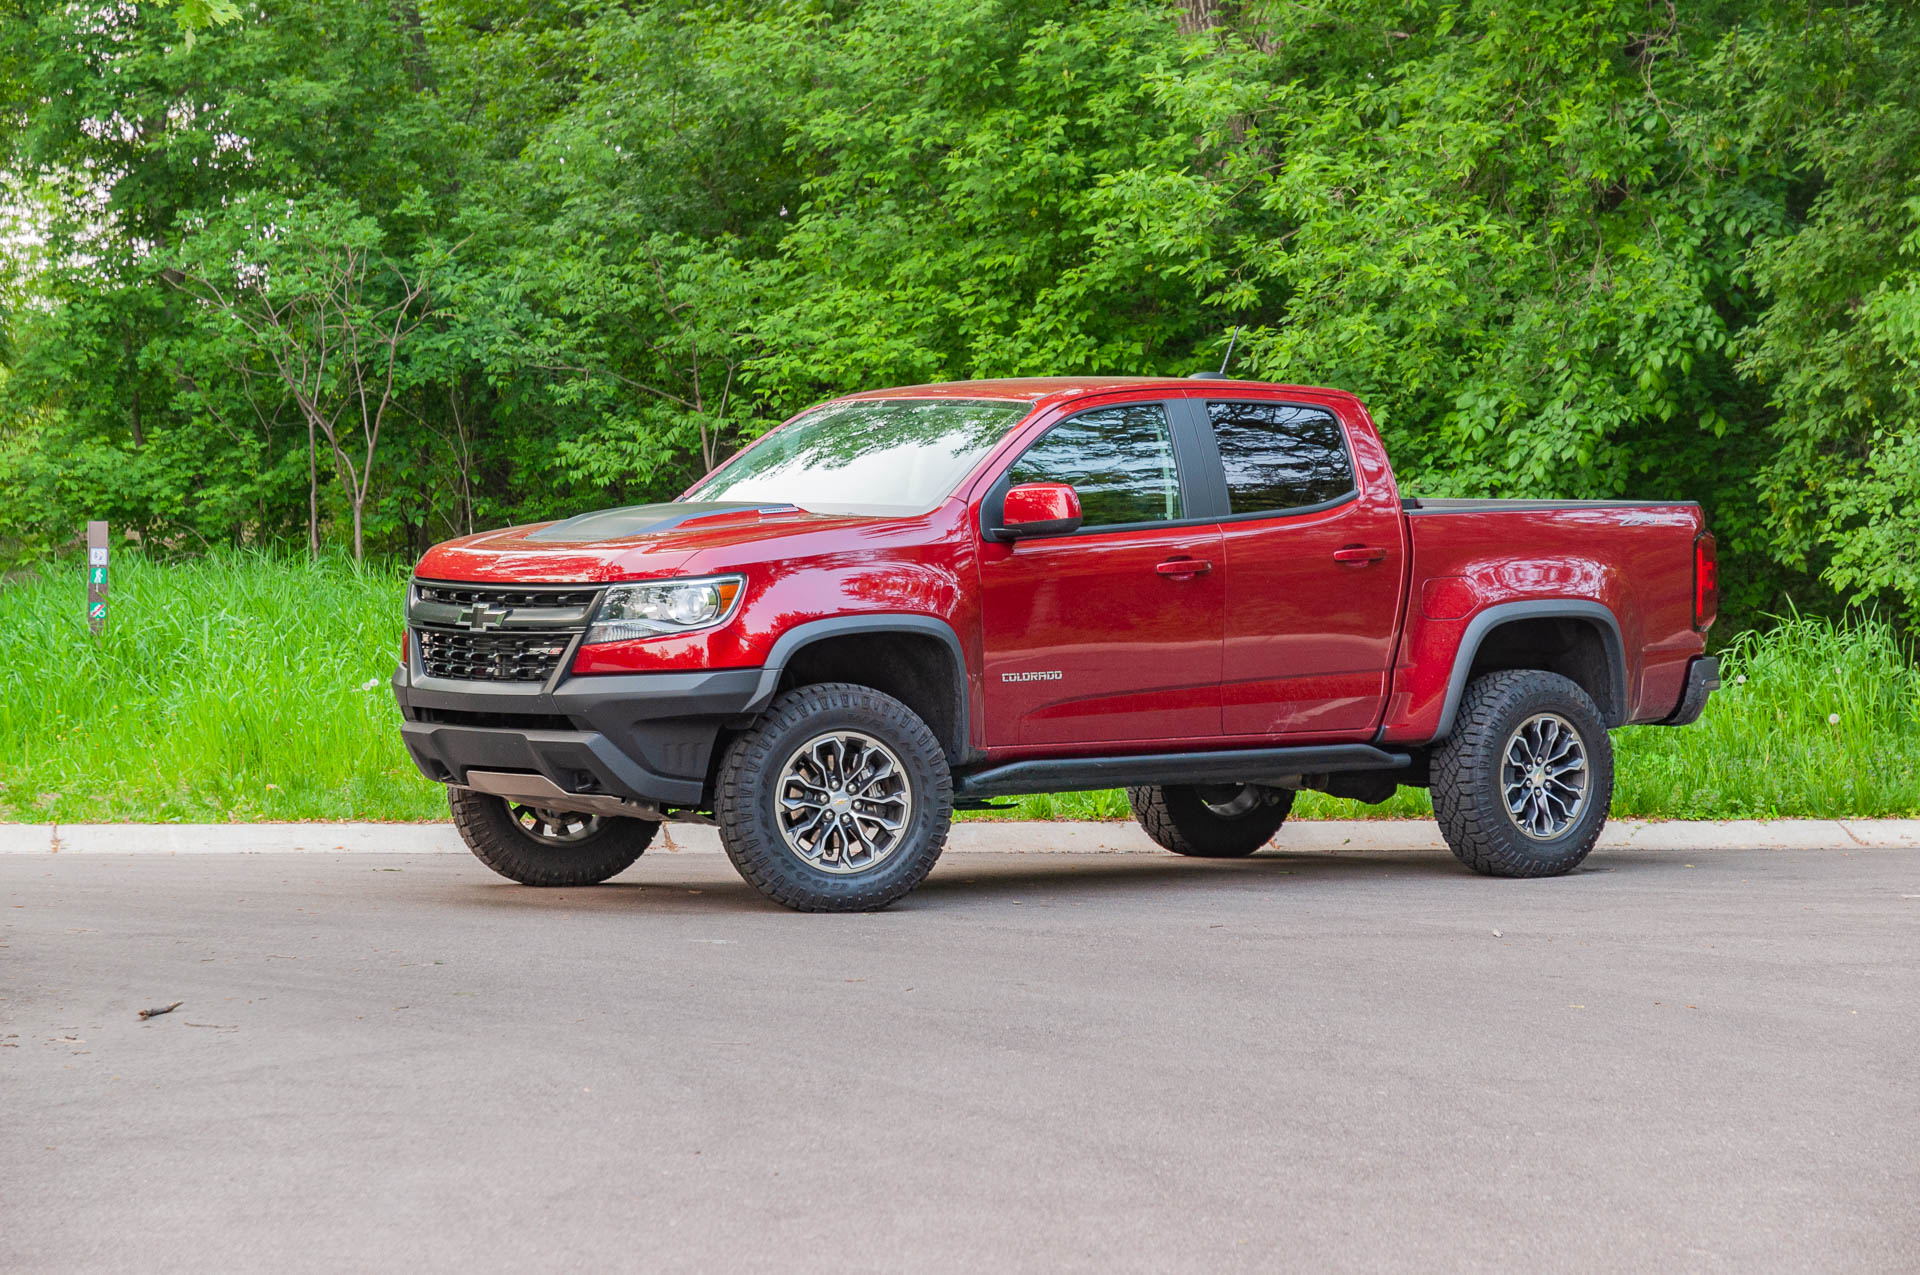 review update  the 2019 chevrolet colorado zr2 can tackle the concrete jungle